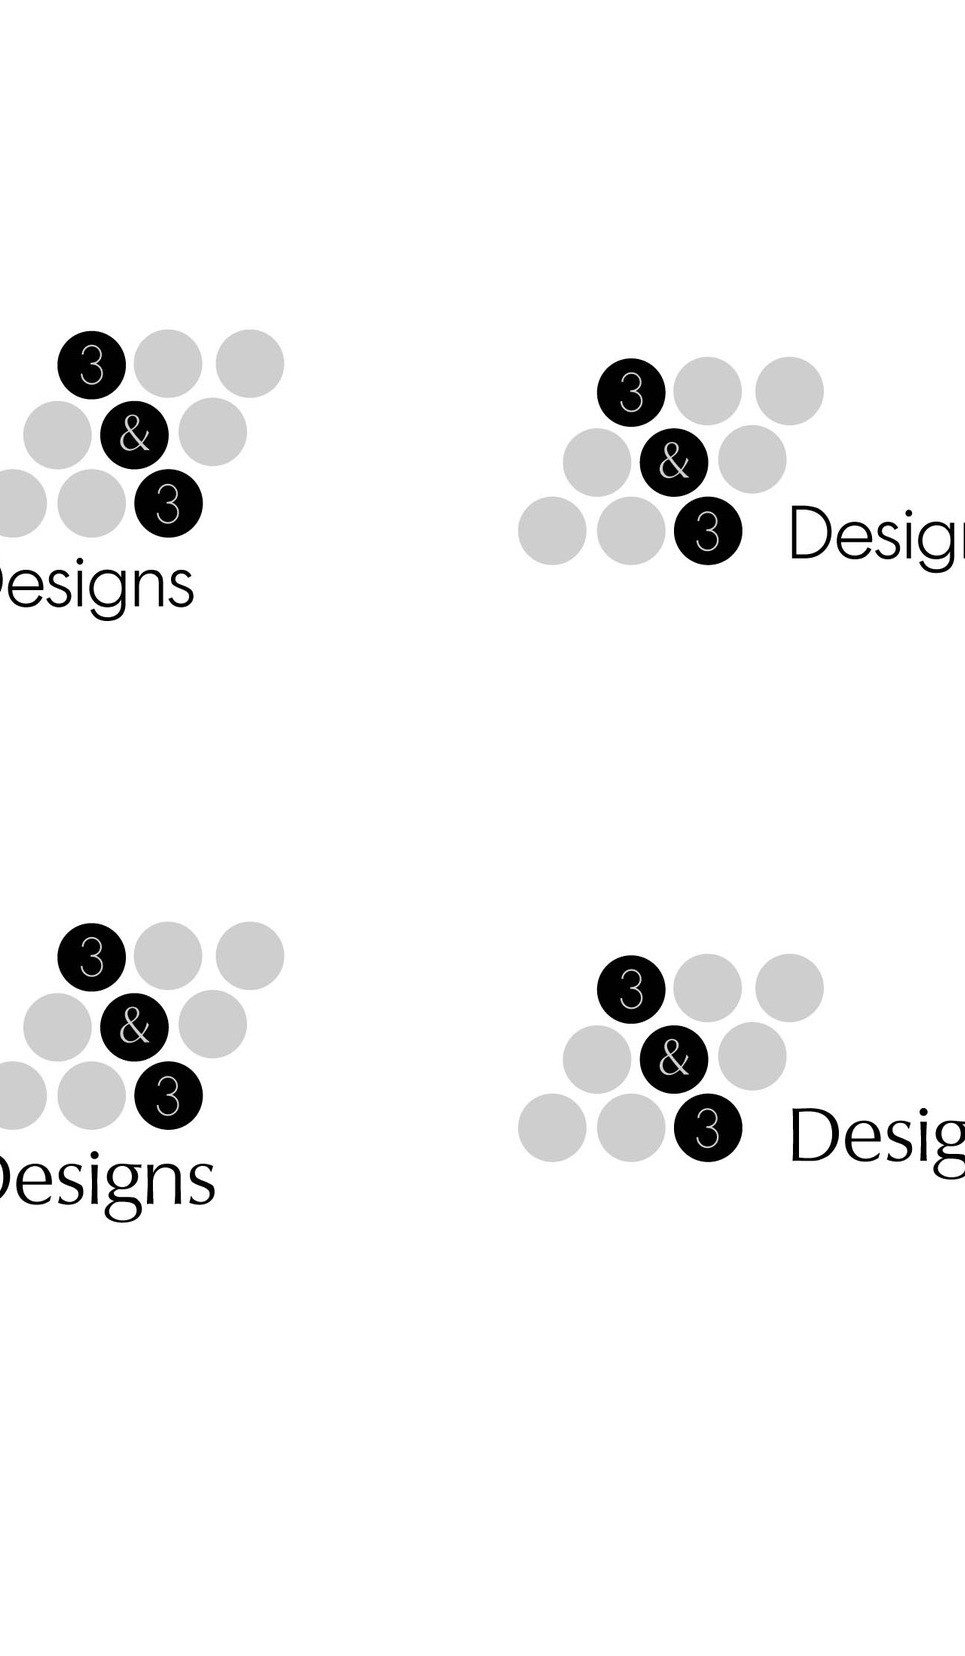 3and3designs show